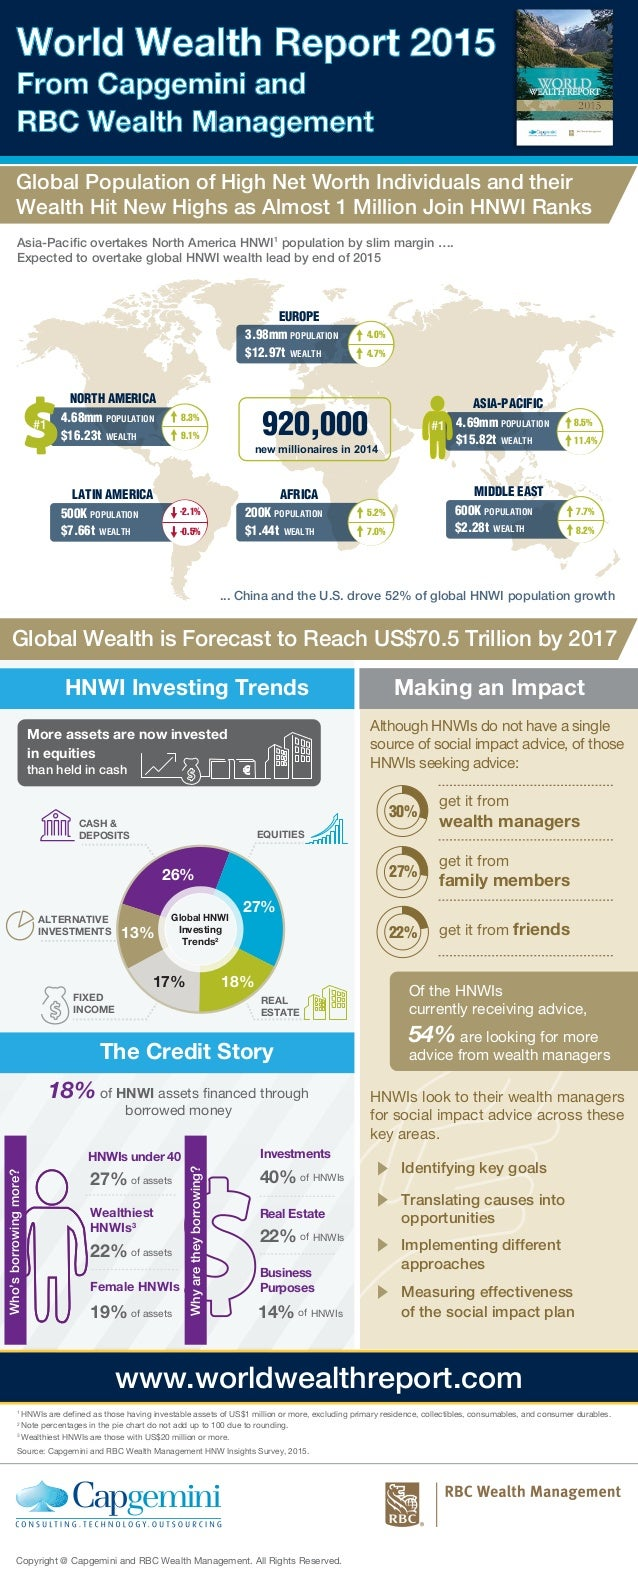 Global Population of High Net Worth Individuals and their Wealth Hit New Highs as Almost 1 Million Join HNWI Ranks World W...